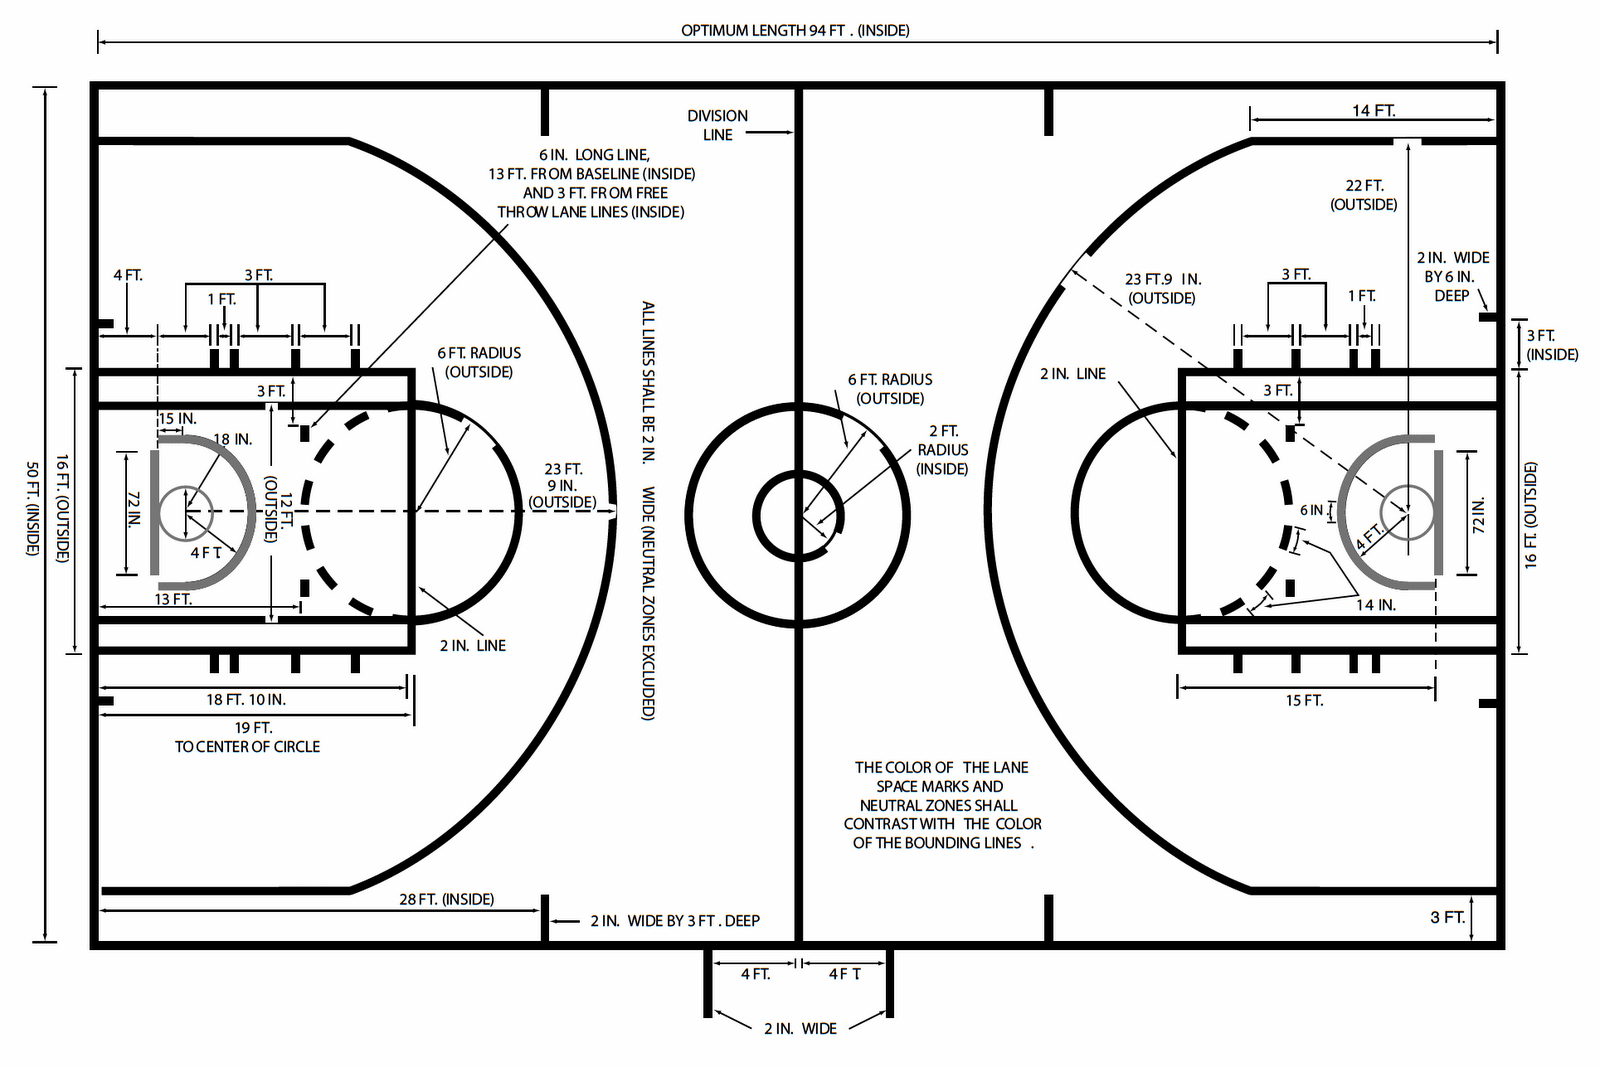 Https I0 Wp Com Sportscourt Wpengine Com Wp Content Uploads 2015 02 Nba Court Dim Basketball Court Size Basketball Court Measurements Basketball Court Layout